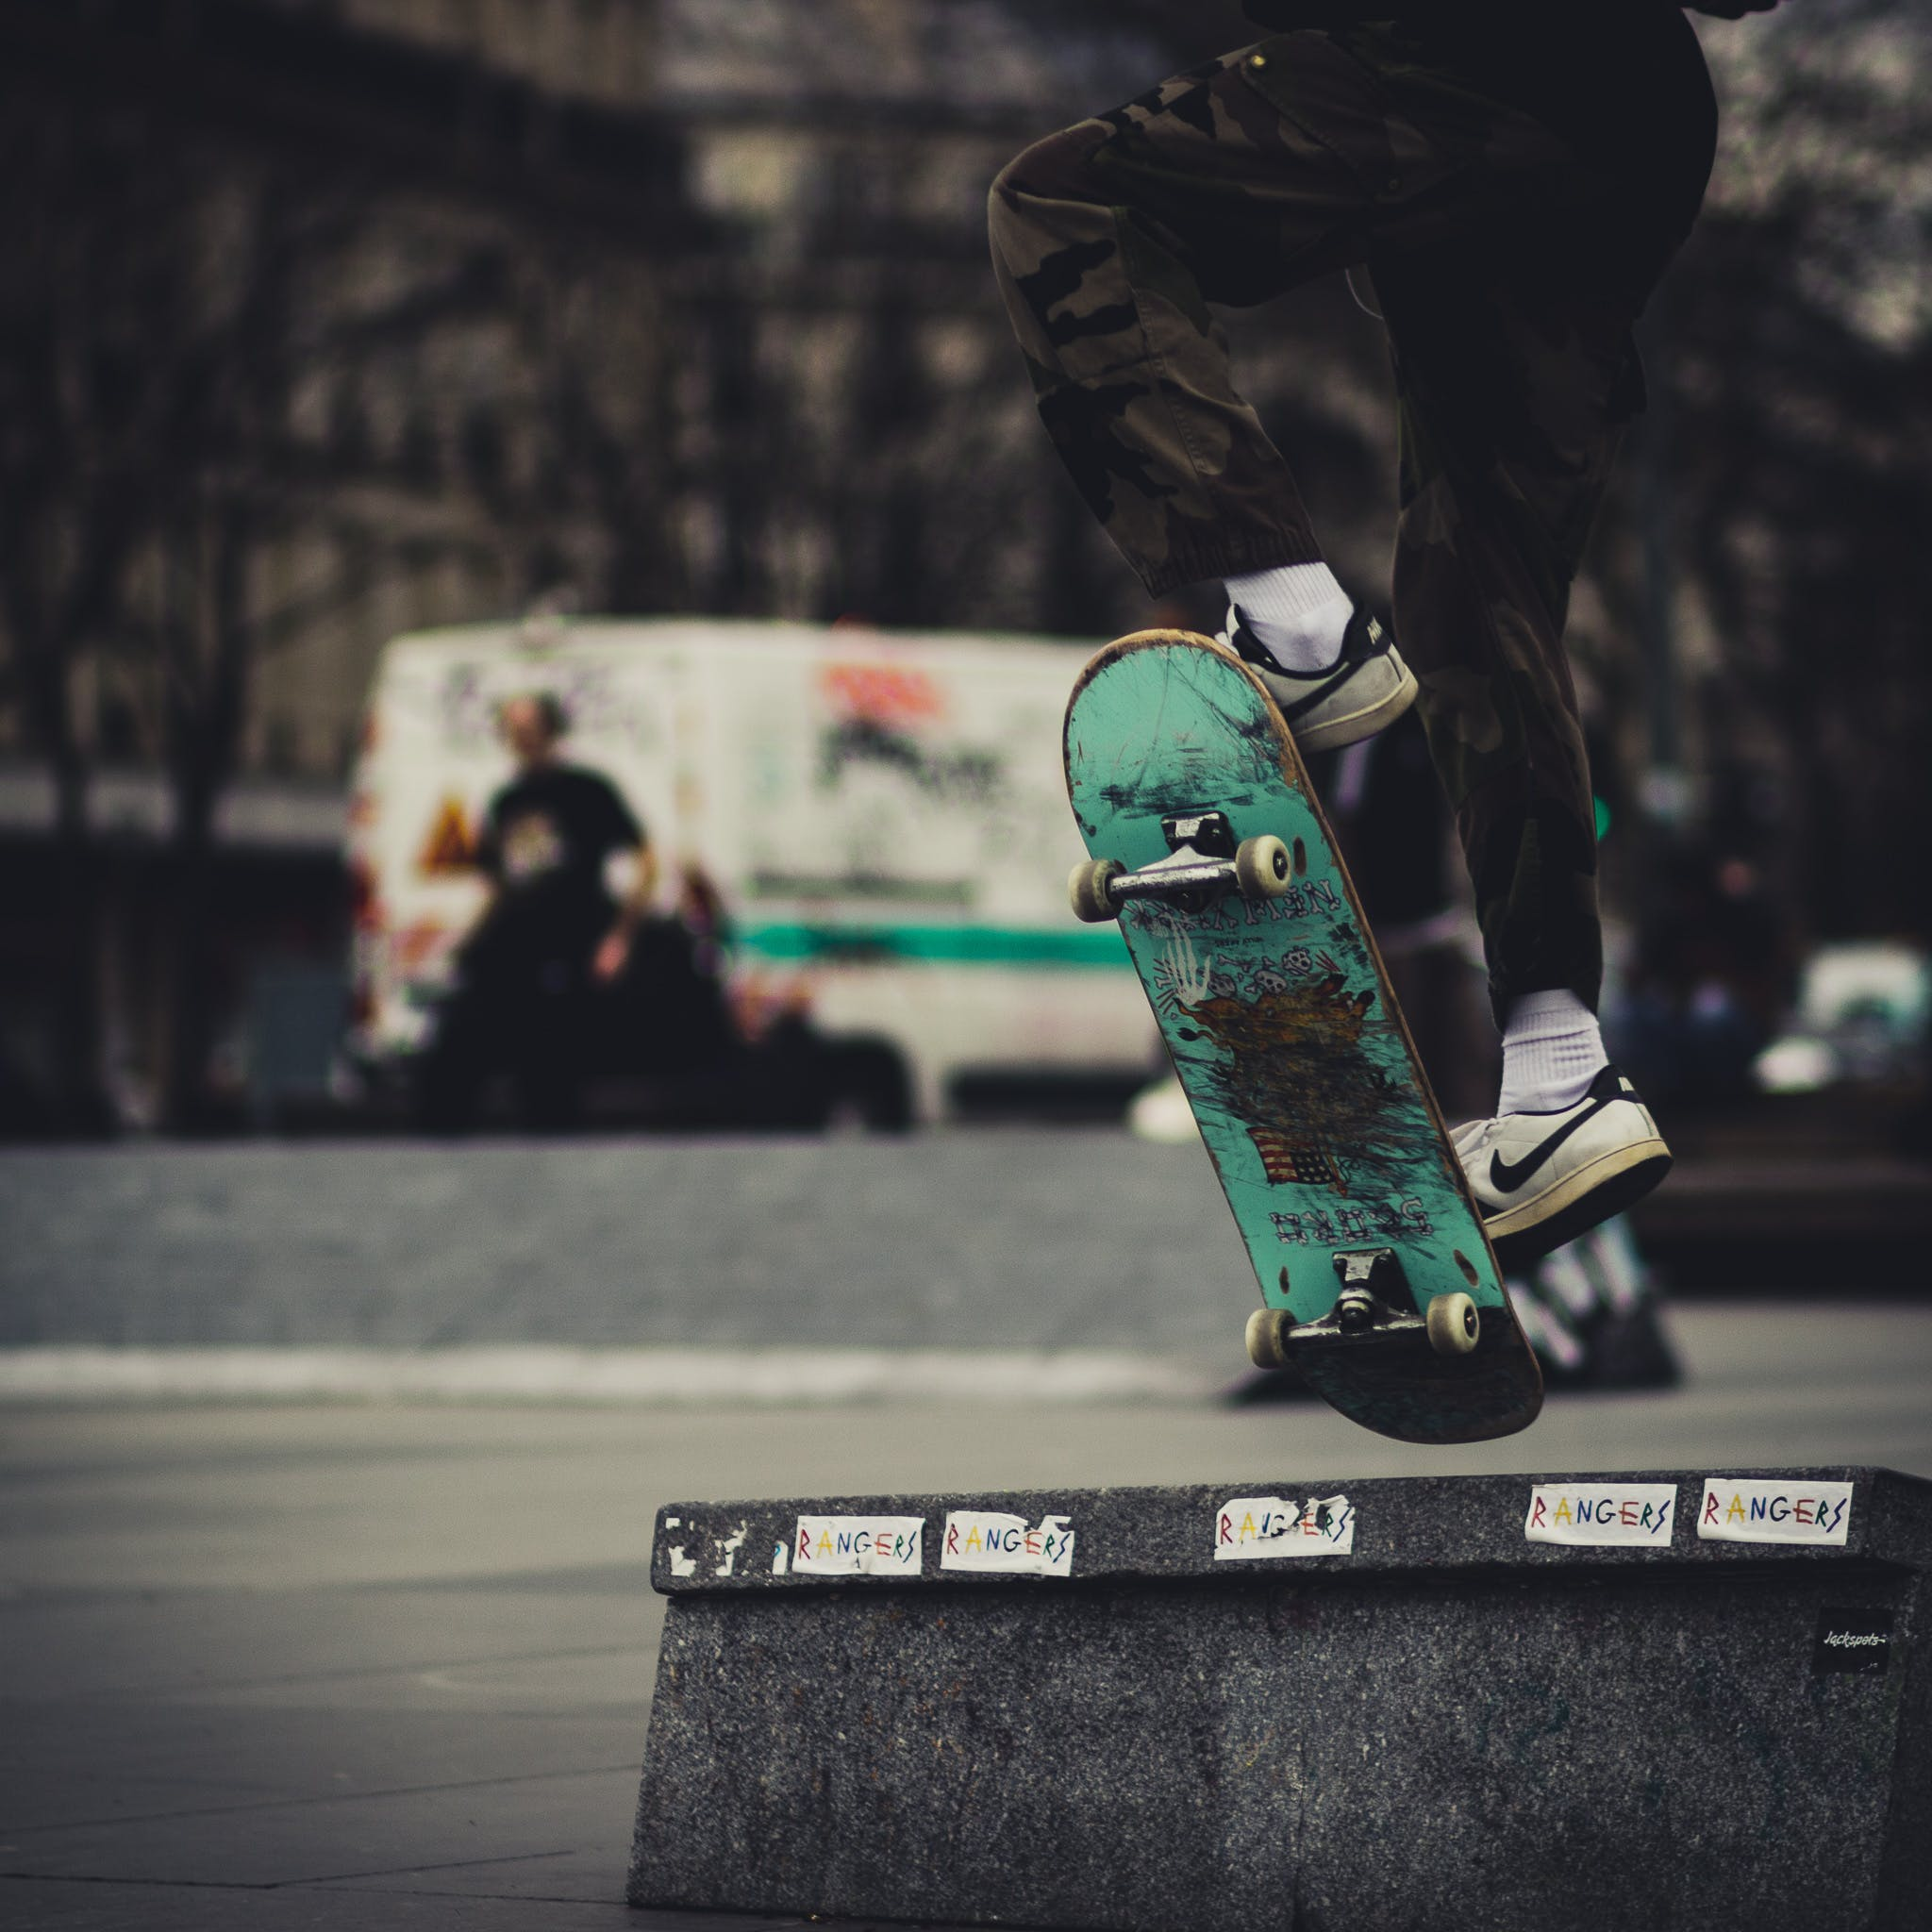 Close-up Photo of Person Skateboarding